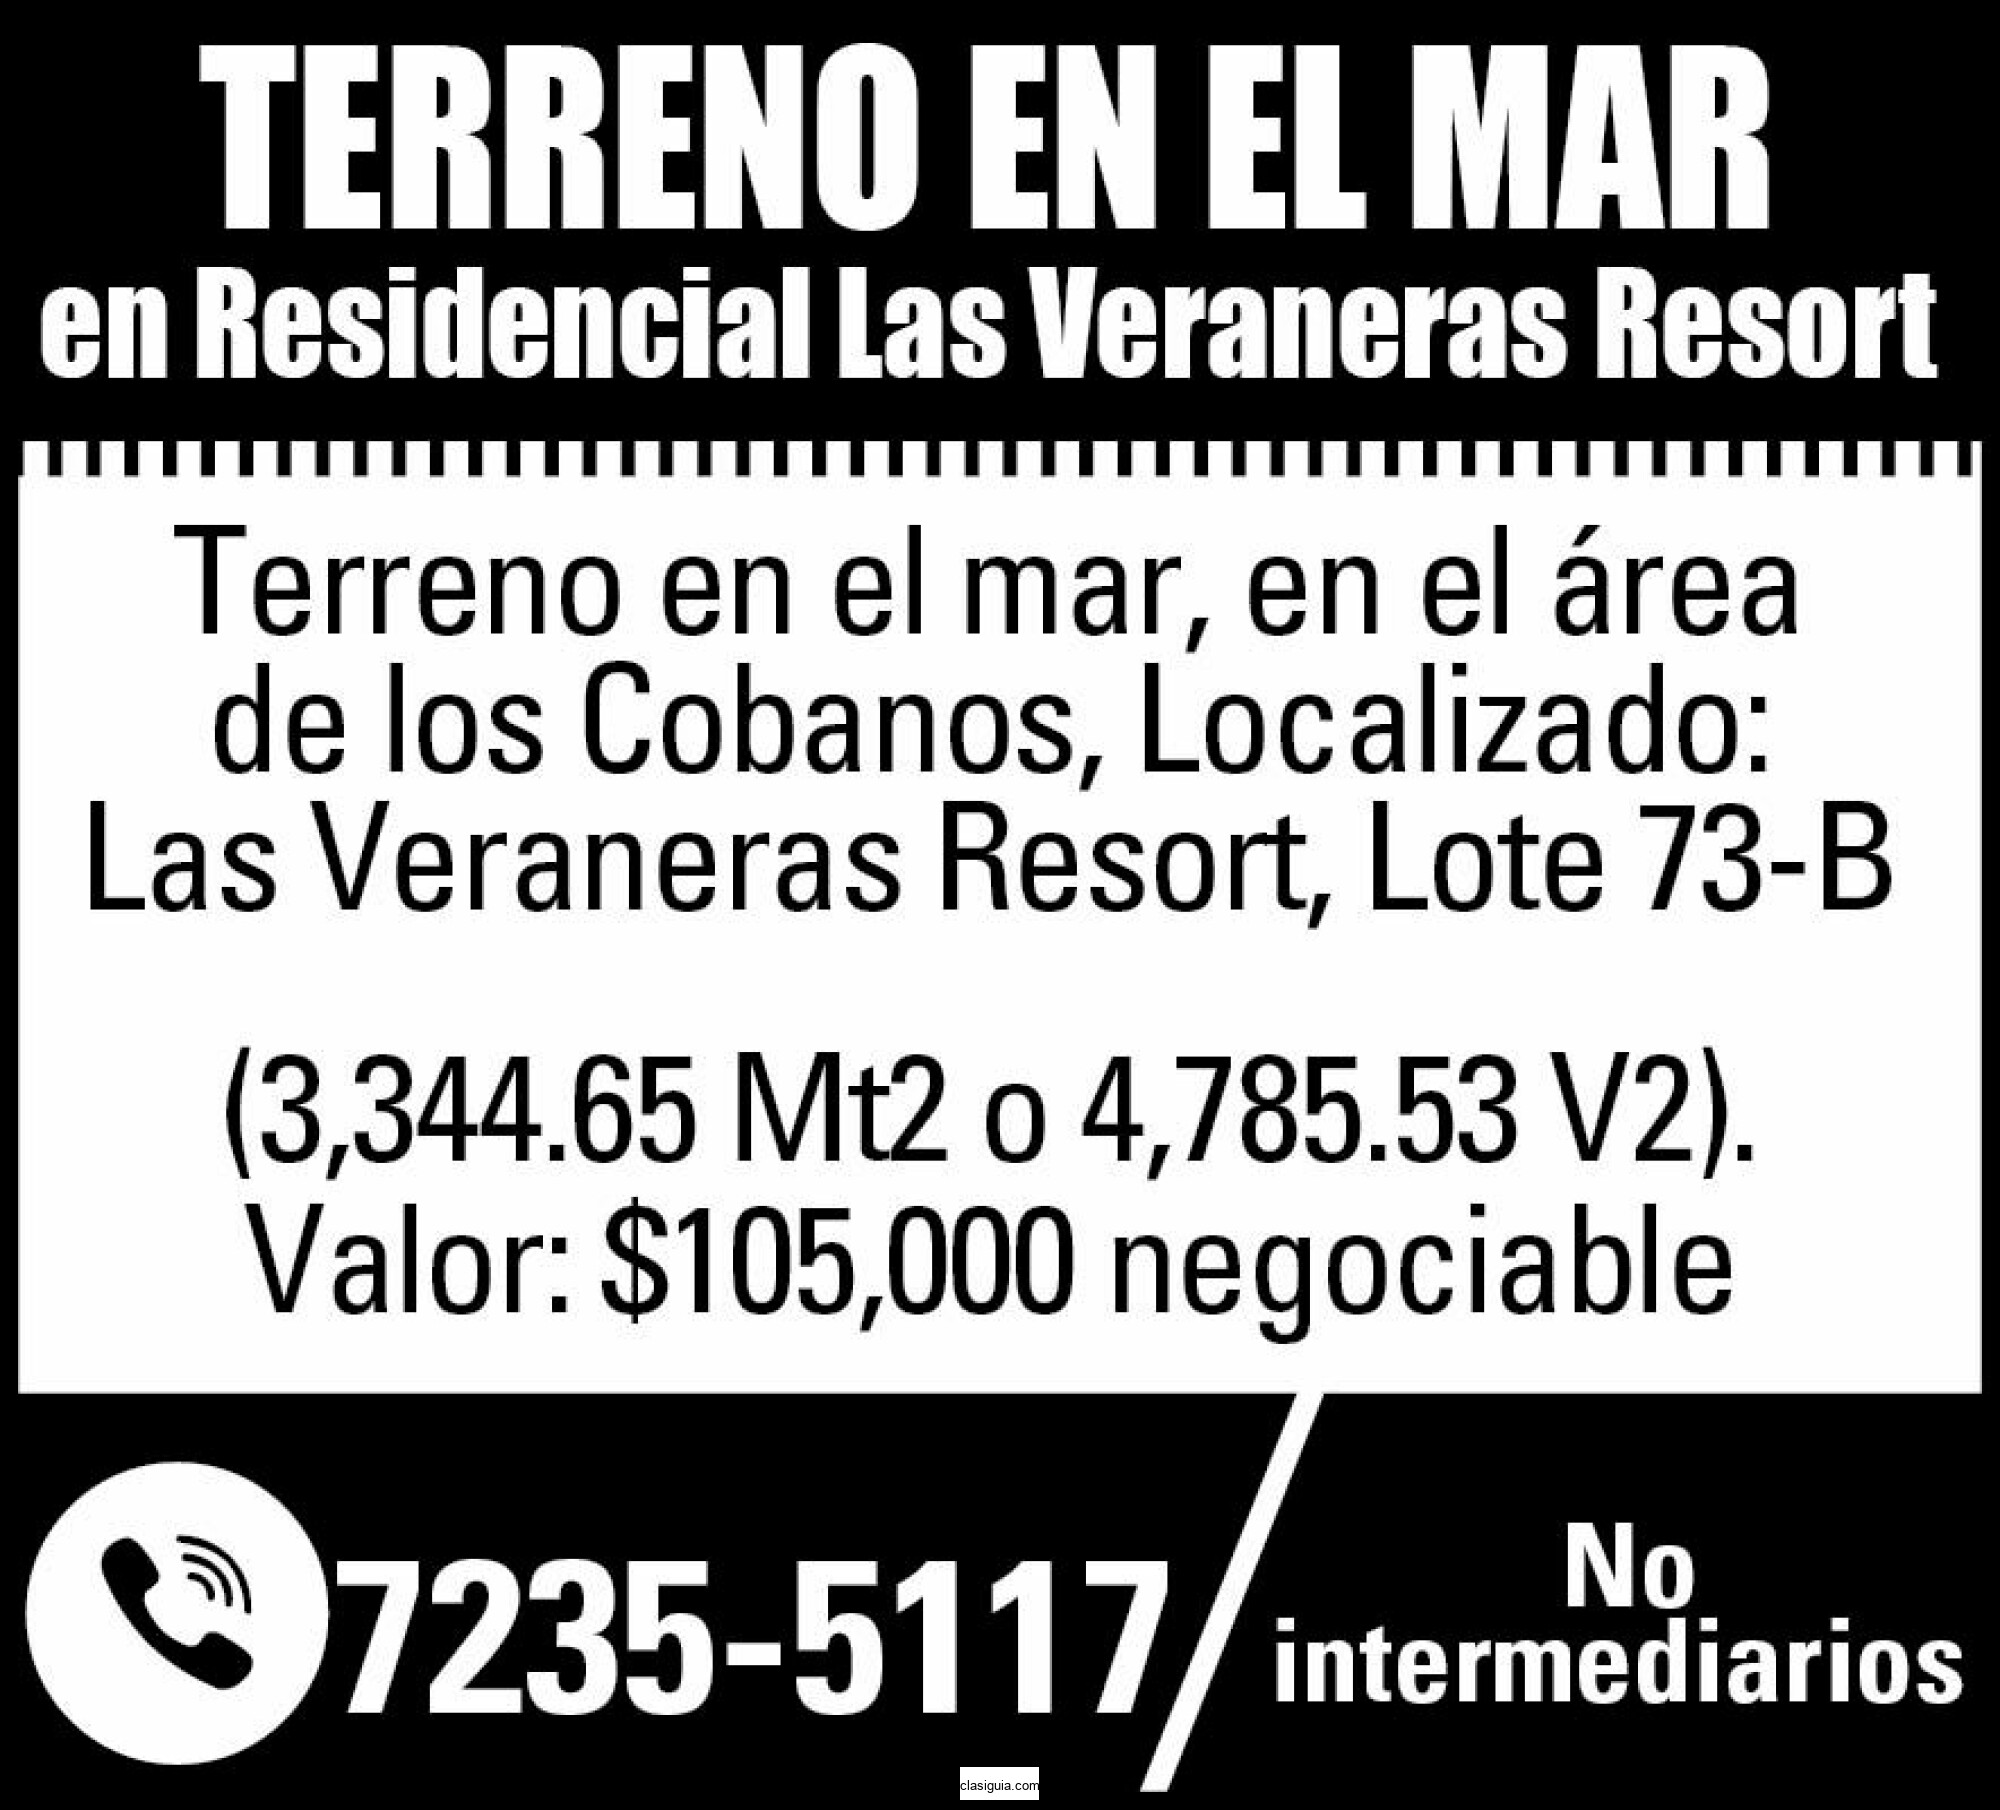 TERRENO EN EL MAR VERANERAS RESORT